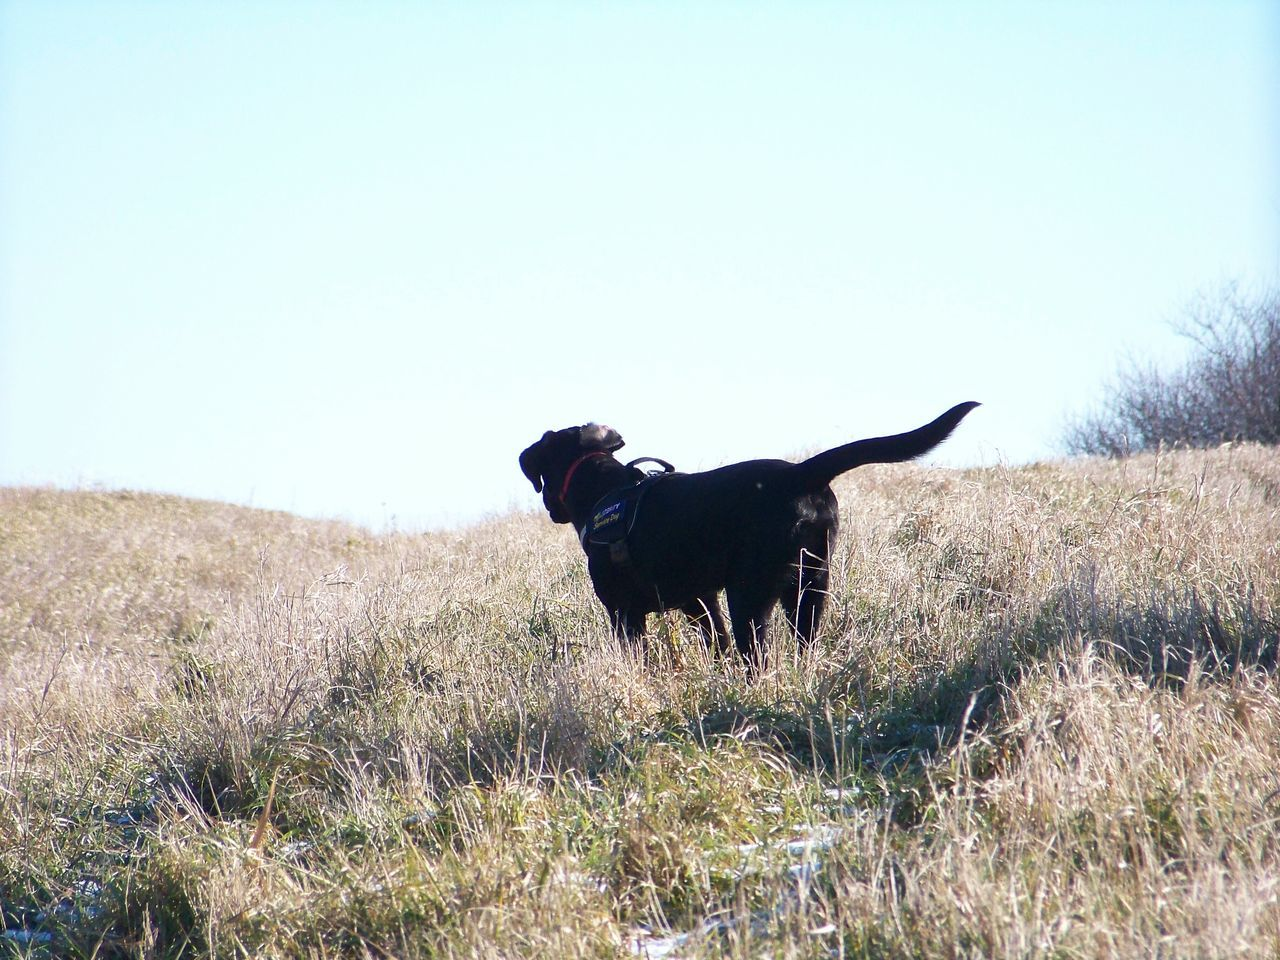 one animal, dog, domestic animals, animal themes, pets, field, nature, mammal, grass, copy space, clear sky, day, no people, outdoors, landscape, beauty in nature, growth, sky, tree